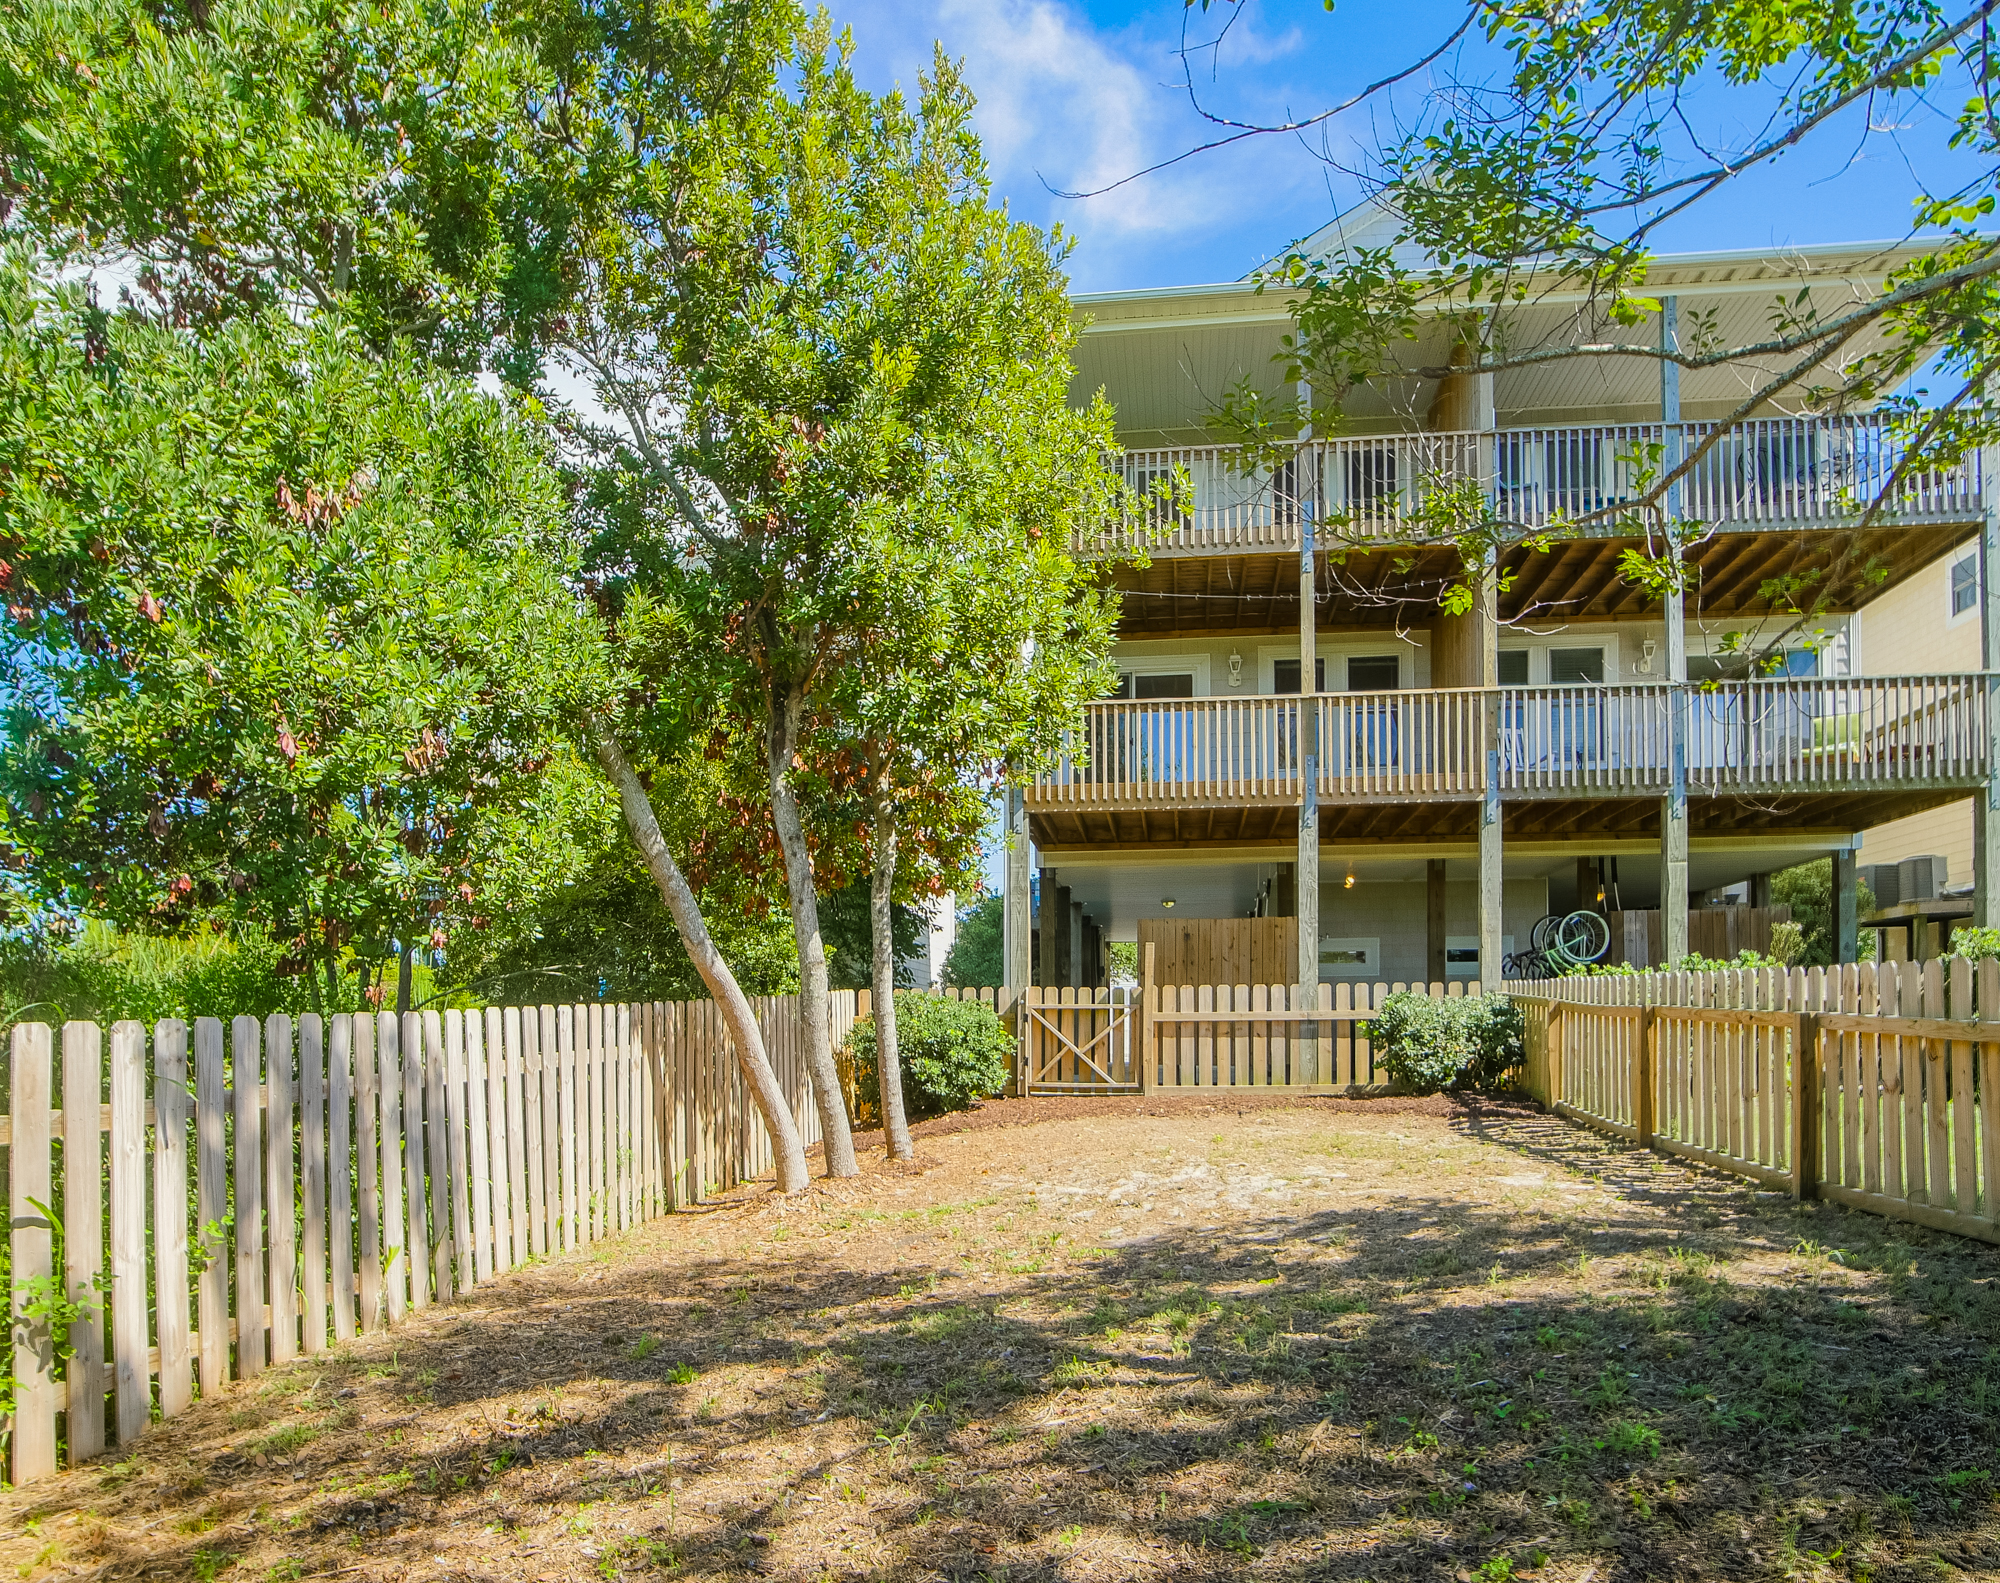 Townhouse for Sale at Beach Townhouse with Sweeping Views of Nature 421-B N New River Dr Surf City, North Carolina, 28445 United States